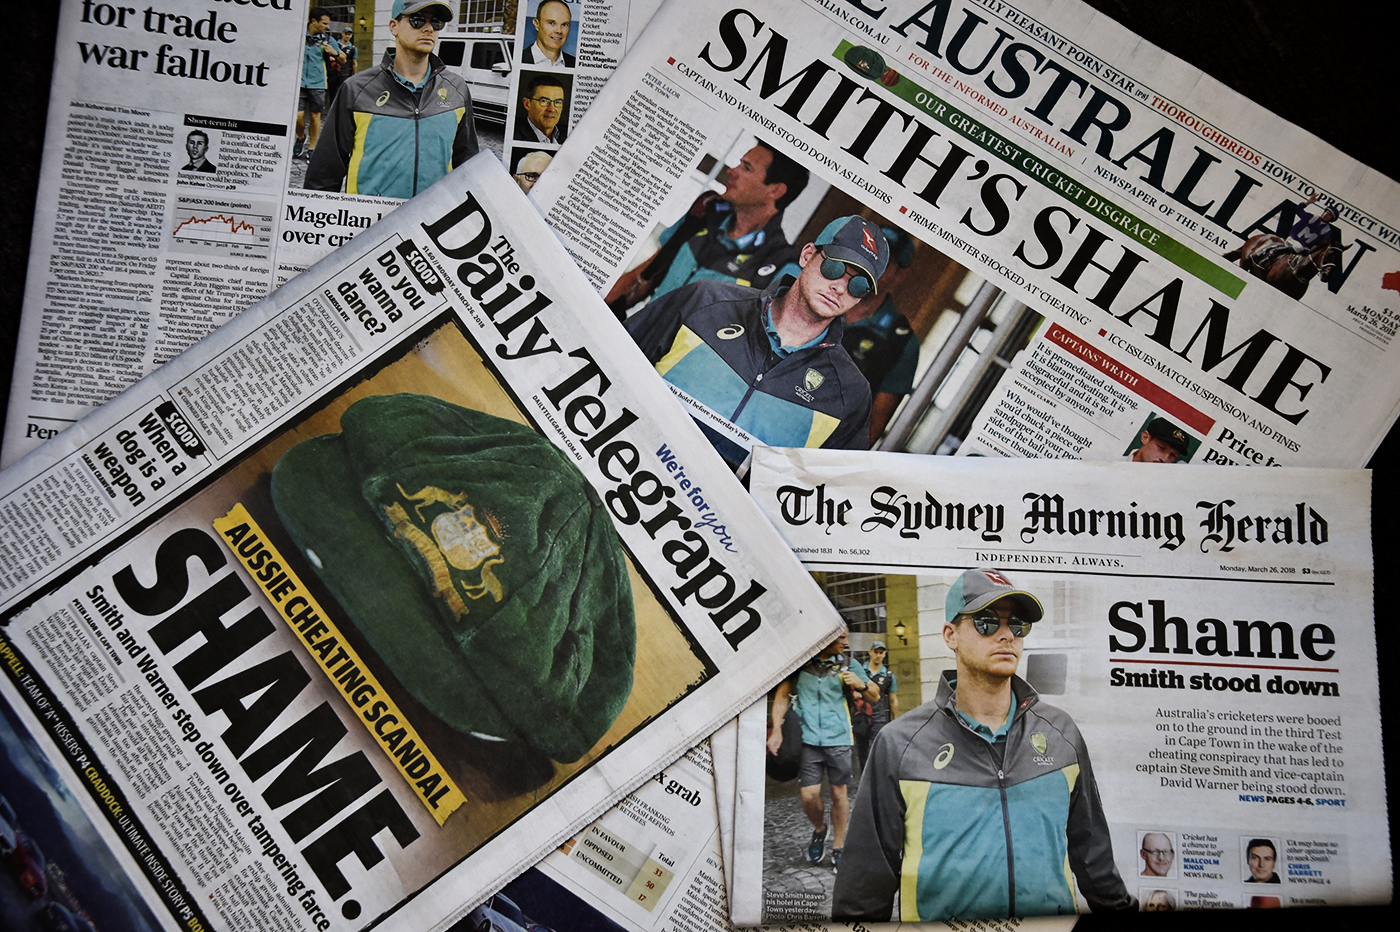 A major reason why Smith and David Warner were punished so harshly is because their actions threatened Cricket Australia's bottom line